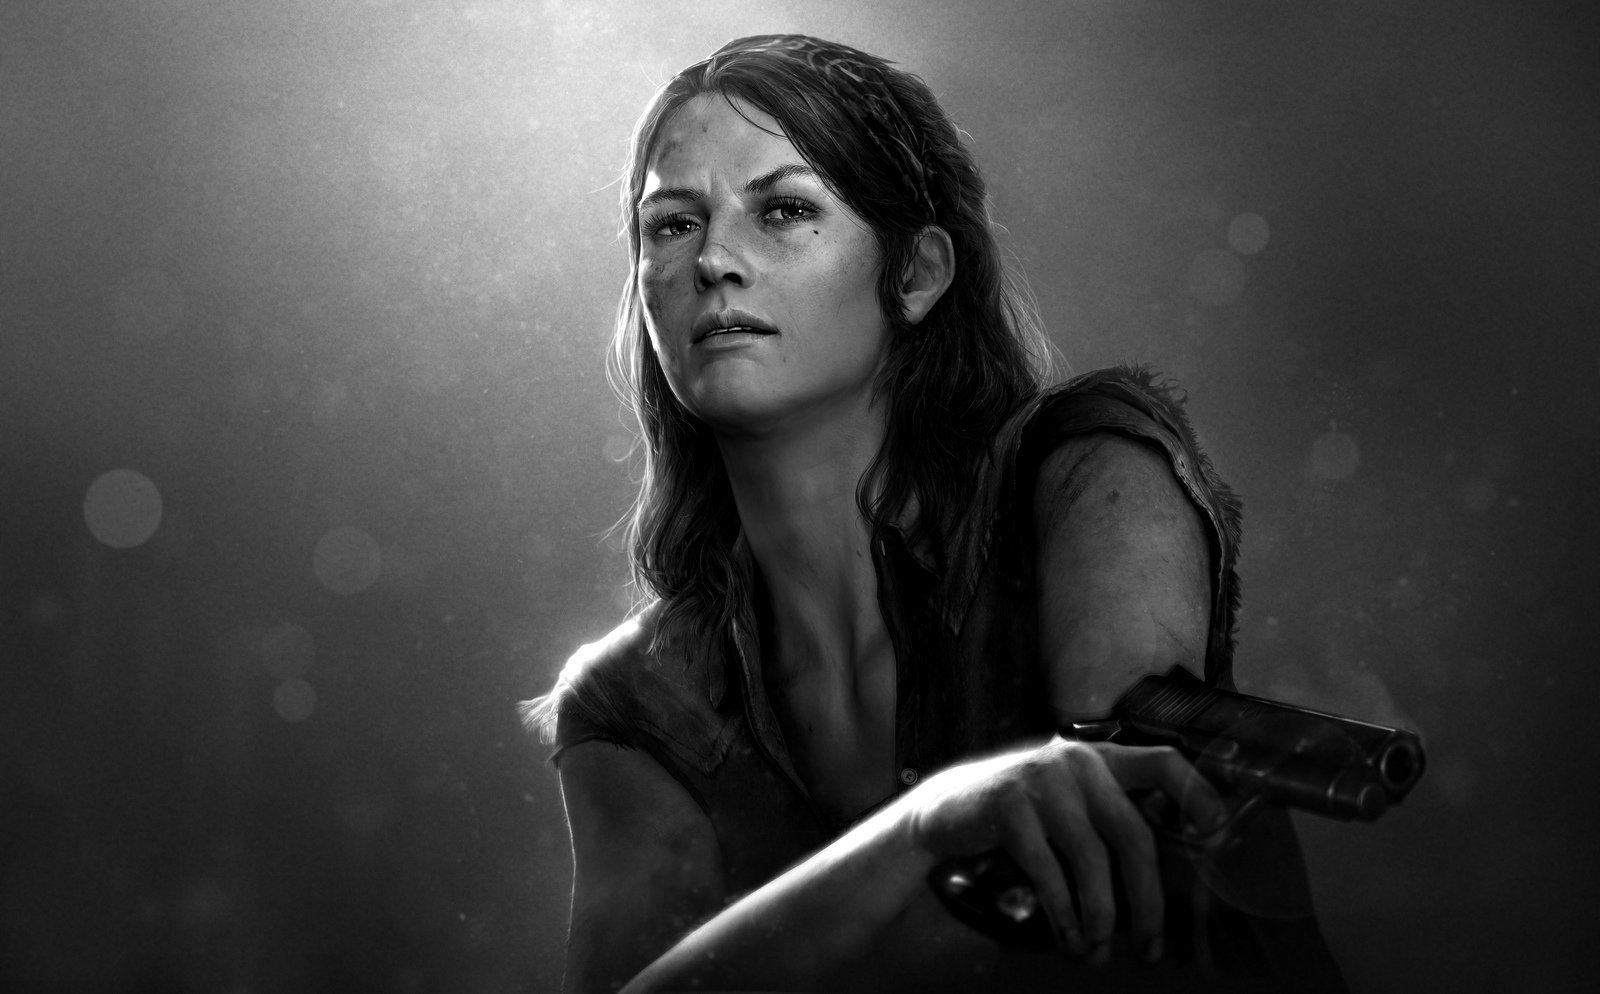 The Last of Us back ground and details on the new character Tess